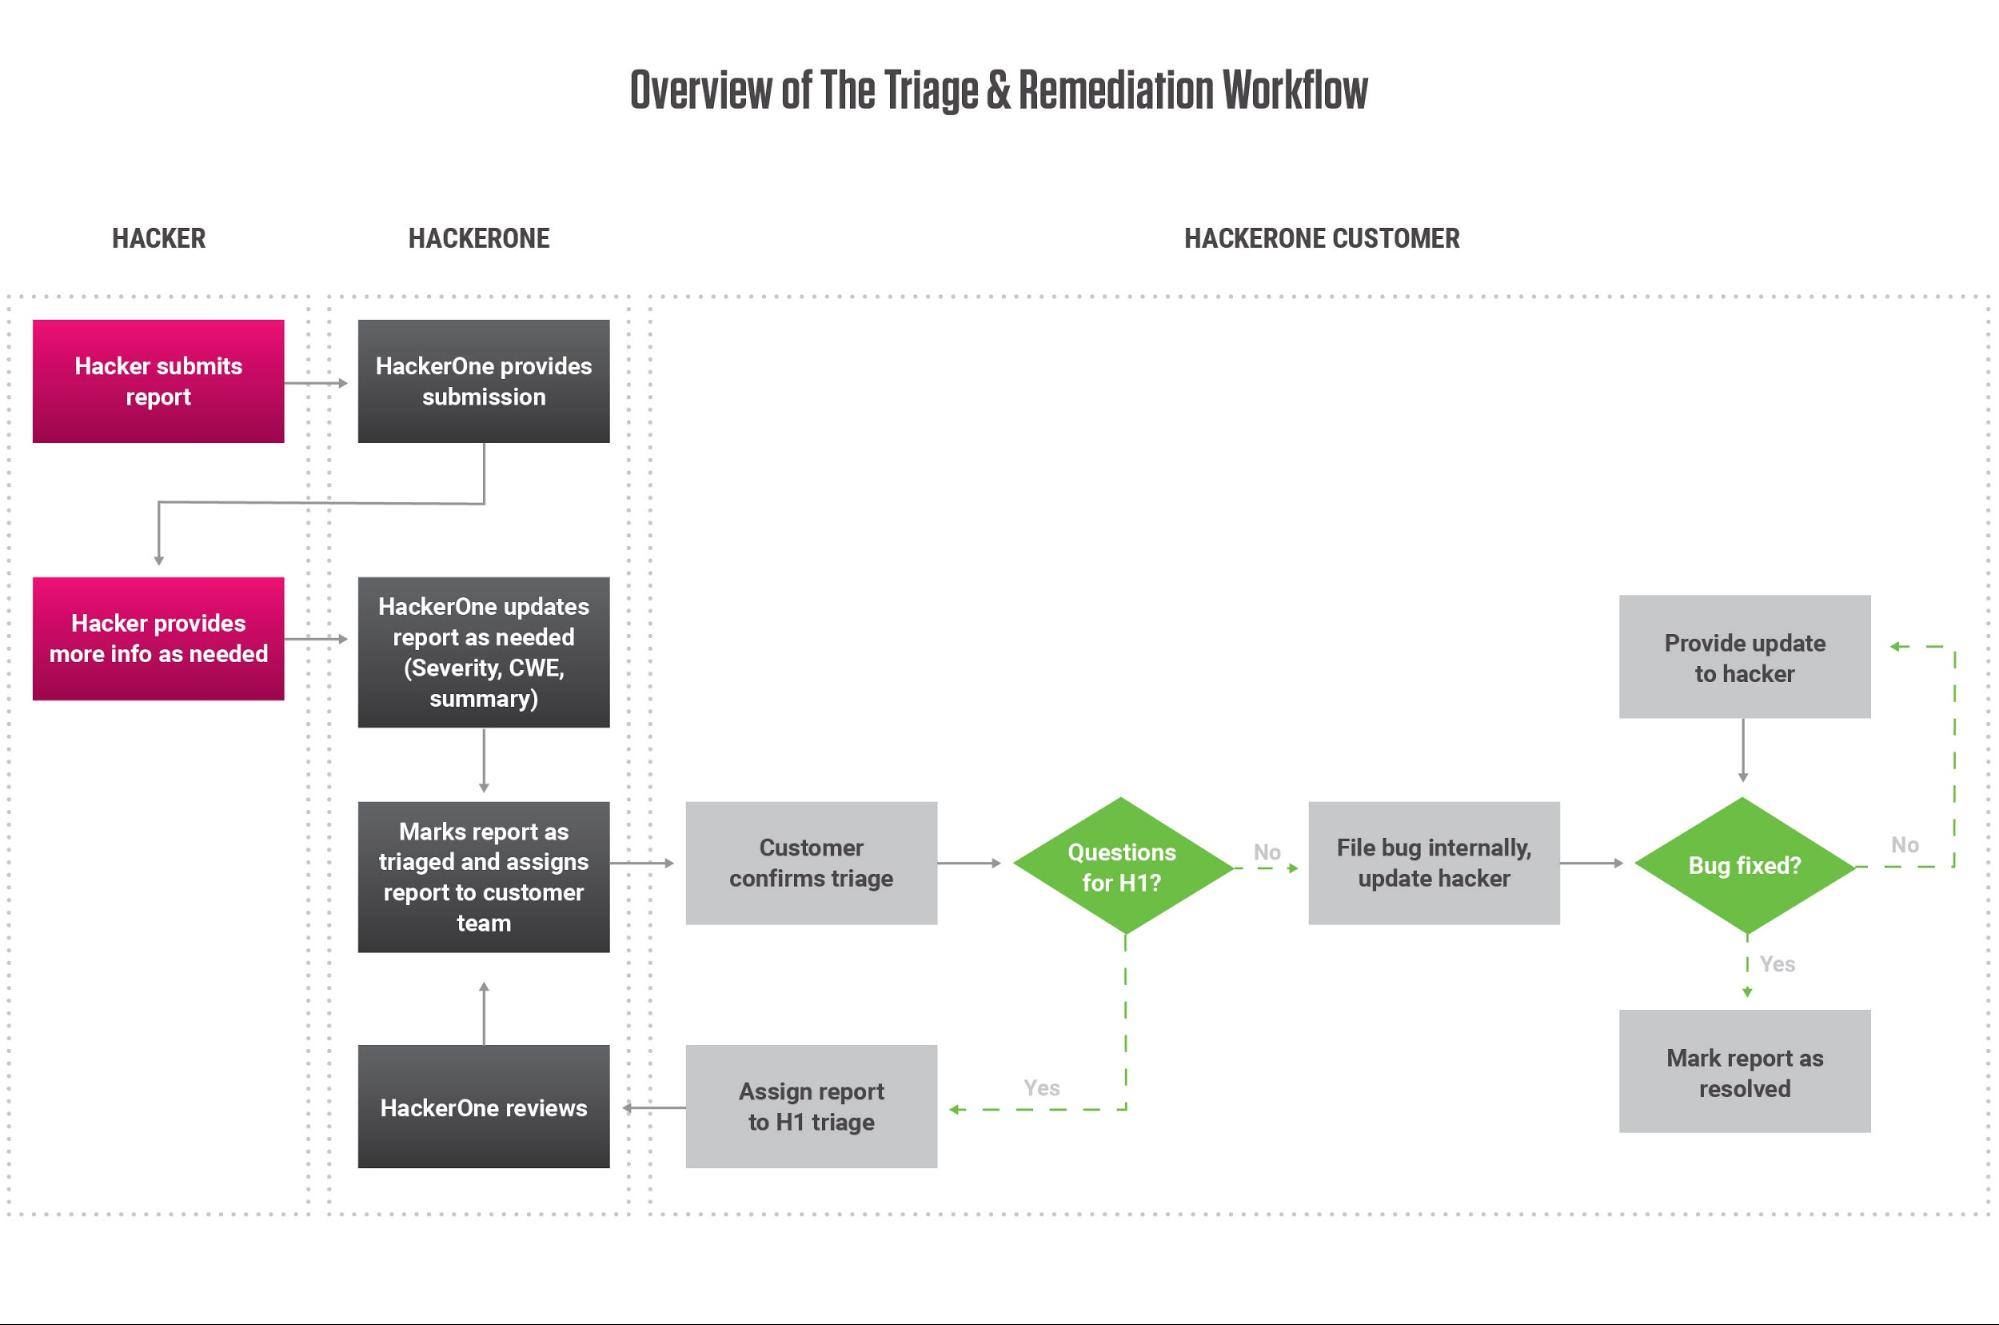 triage and remediation workflow